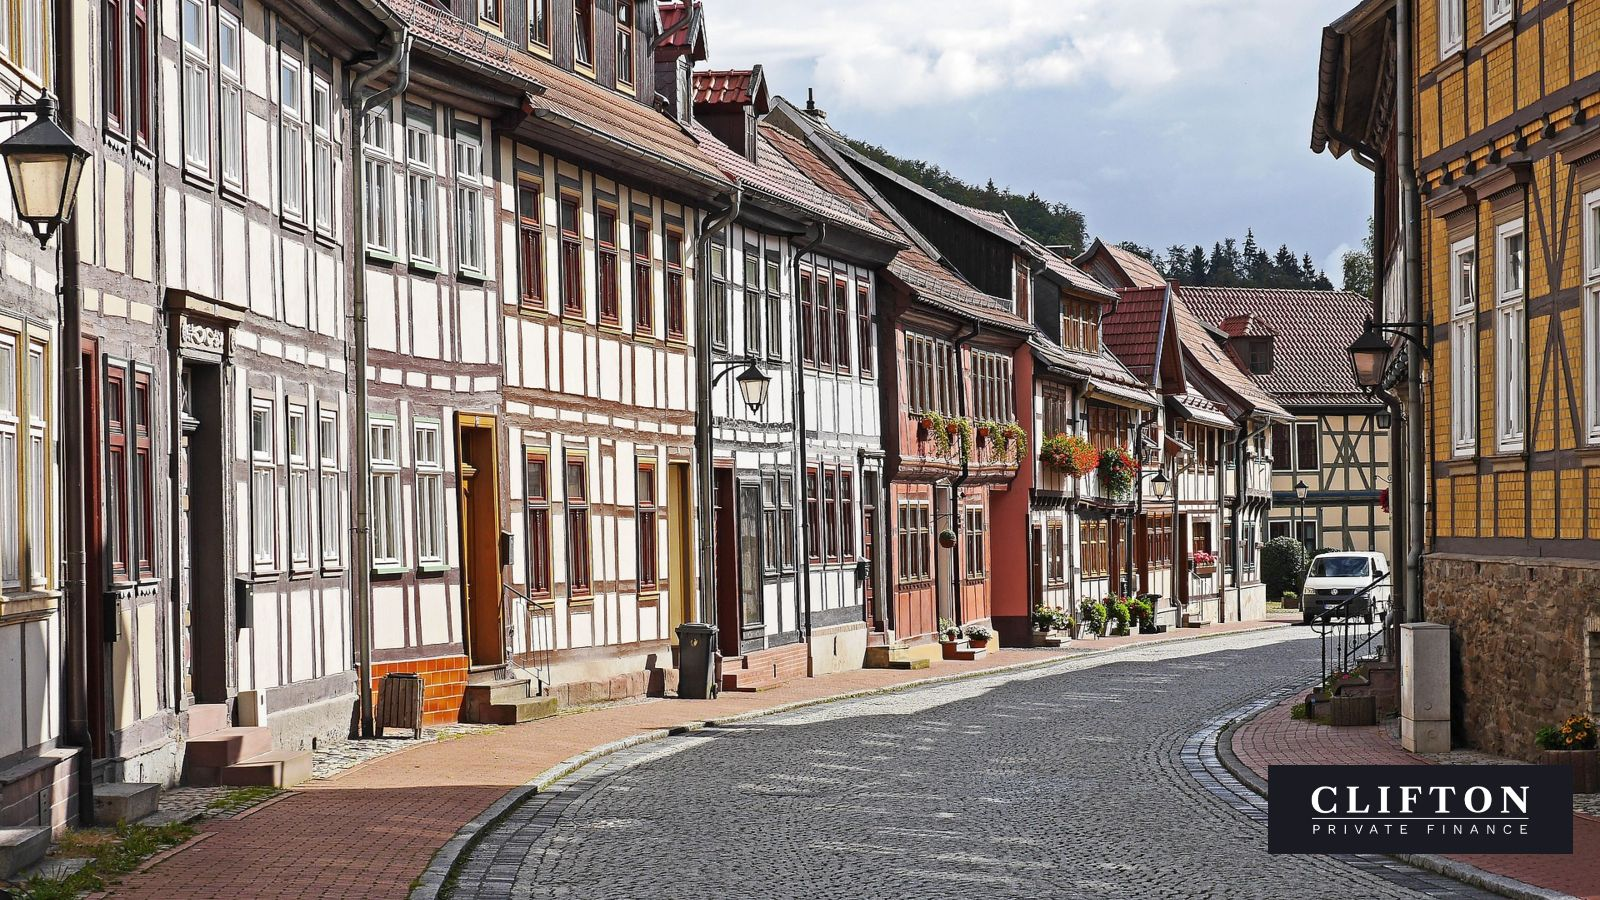 Moving To Germany? Use A Bridging Loan To Fund Your Home Purchase Quickly